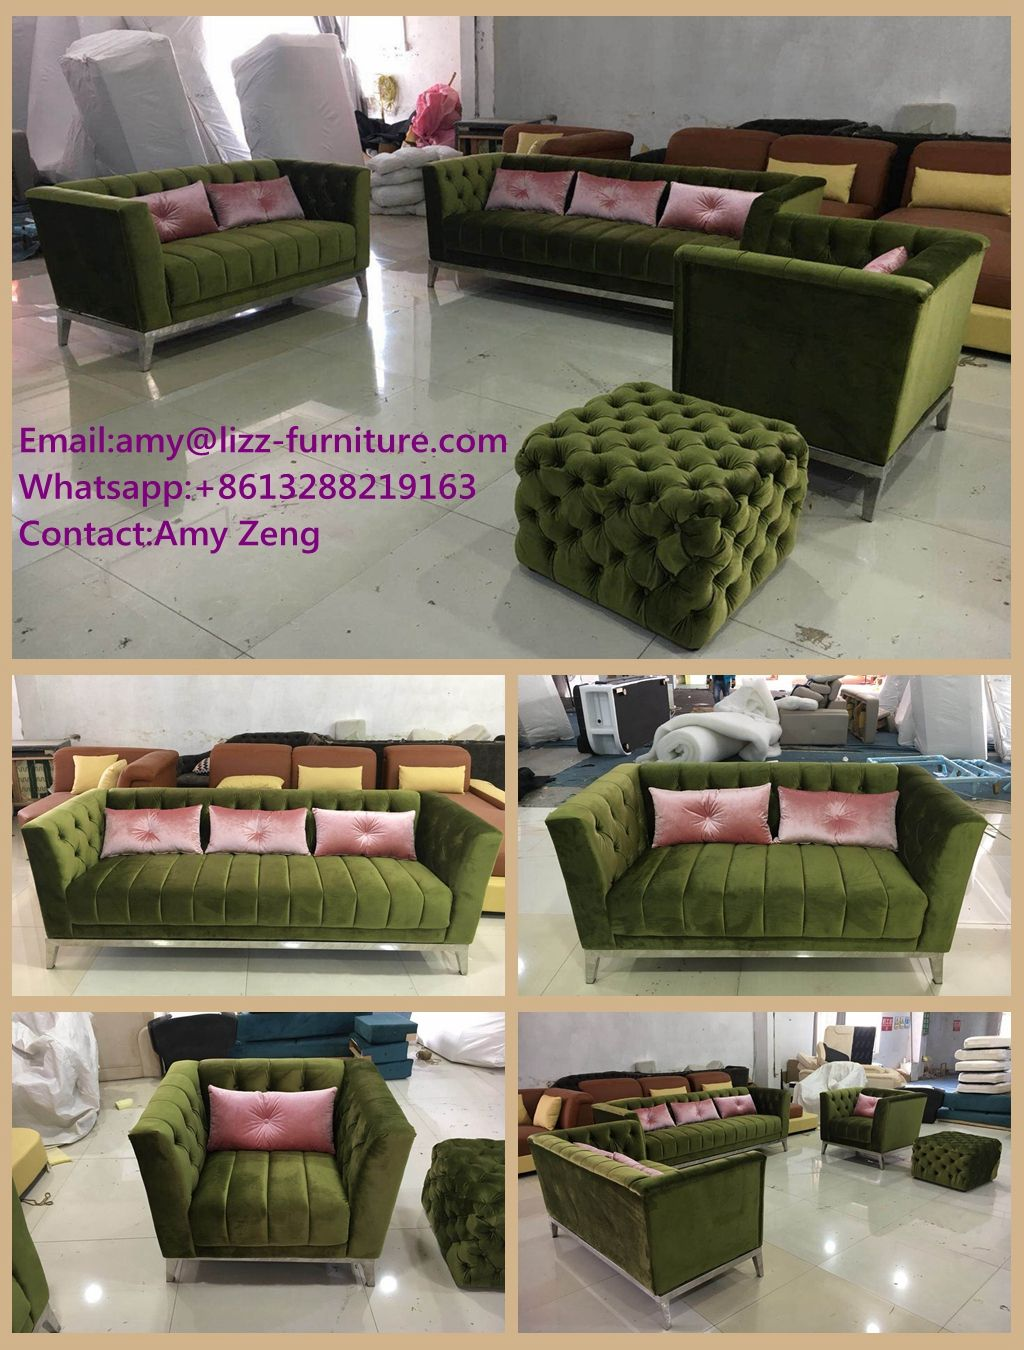 Lizz Furniture 2019 New Design Fabric Sofa Set Lf820 We Will Take It To 2019 Malaysian International Fur Furniture Bedroom Furniture Sets Wood Furniture Design